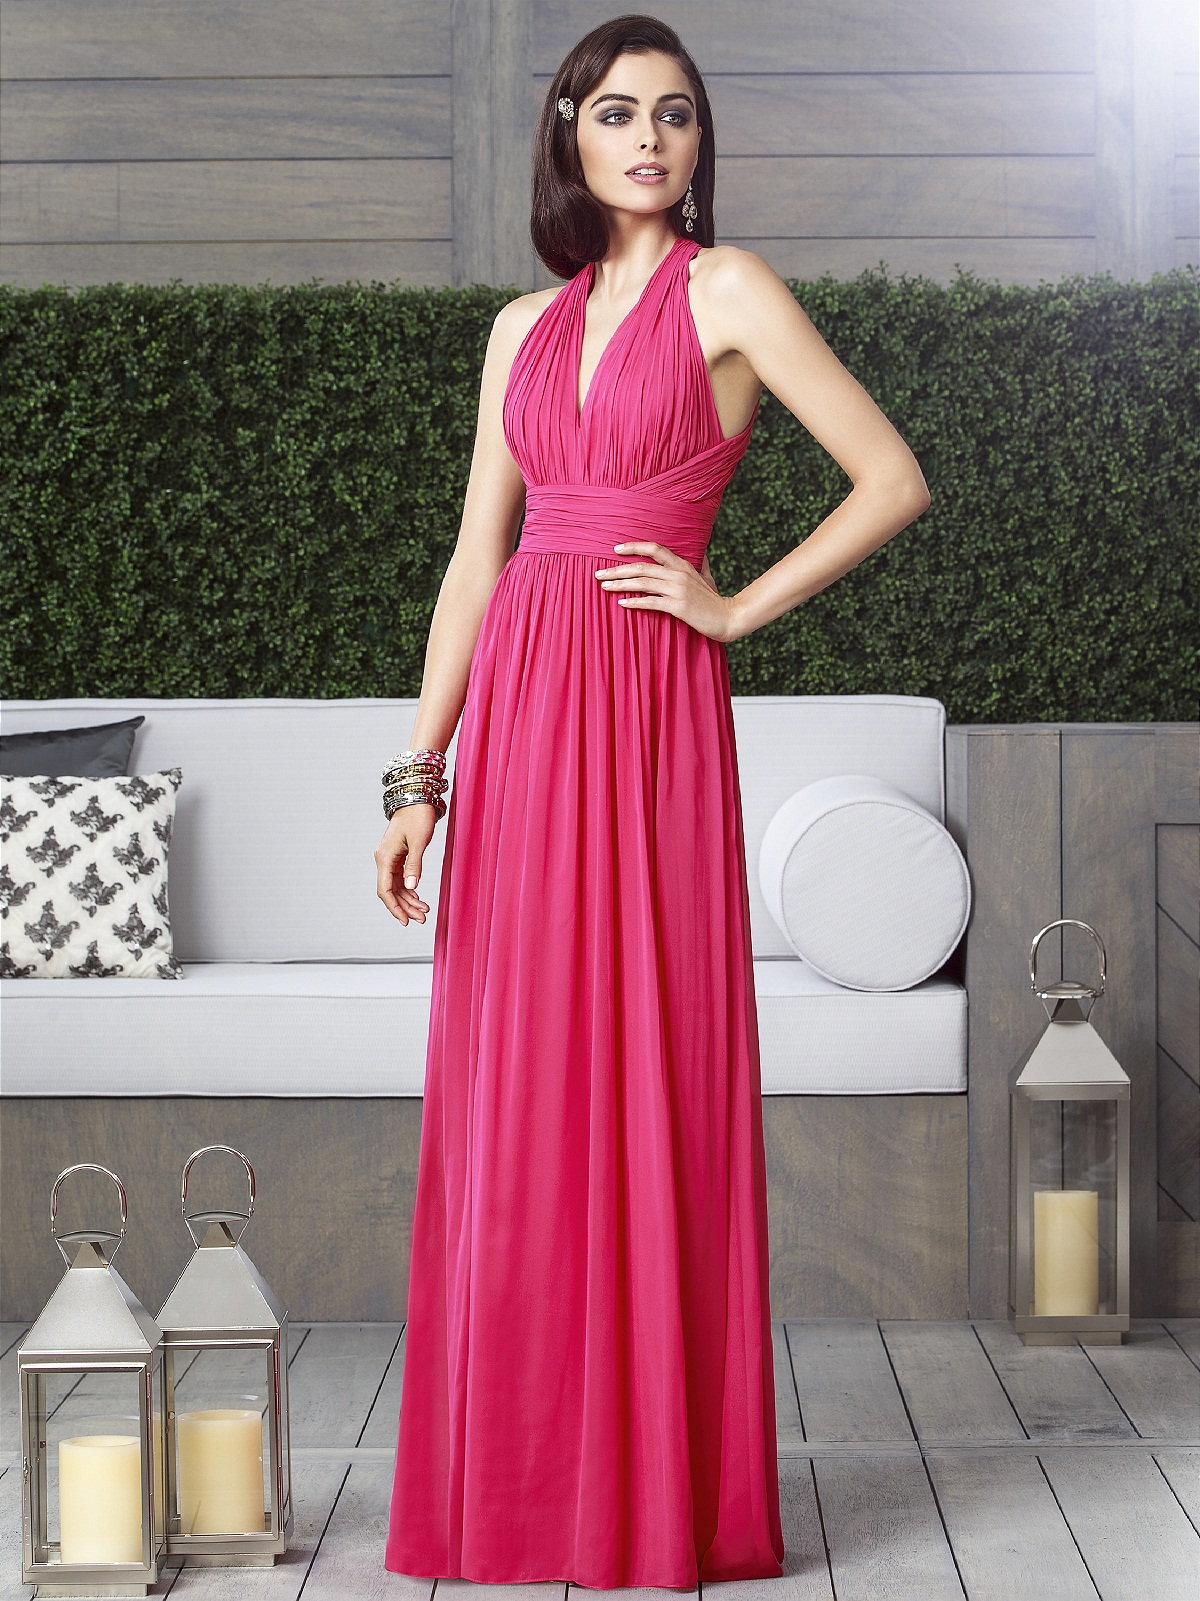 Dessy uk bridesmaid dresses image collections braidsmaid dress bridesmaid dresses uk dessy bridesmaid dresses uk ombrellifo image collections ombrellifo Image collections